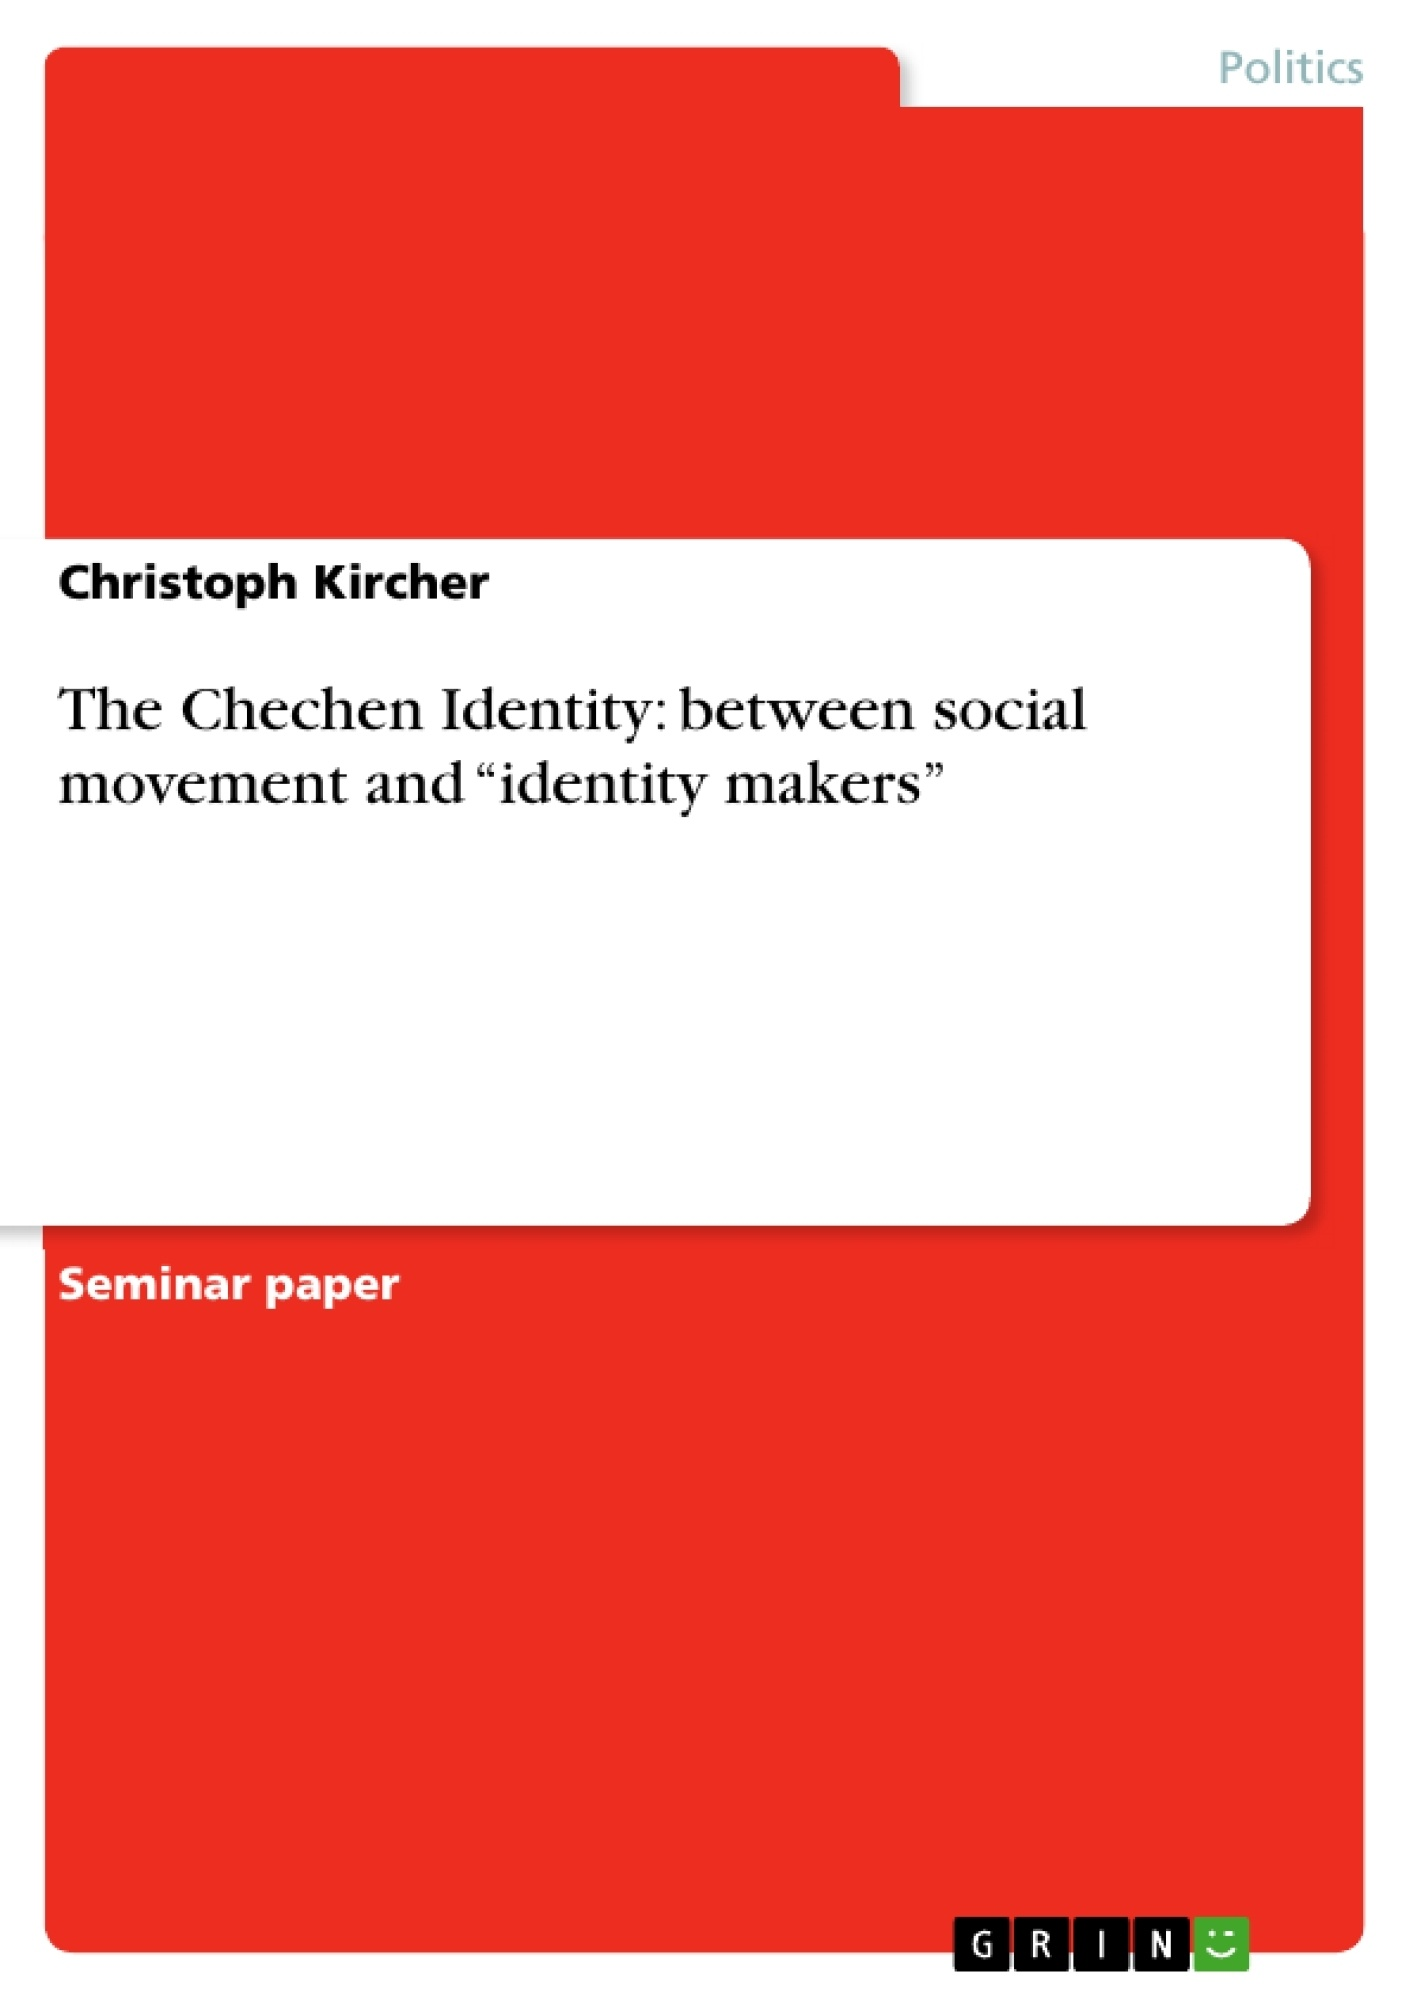 """Title: The Chechen Identity: between social movement and """"identity makers"""""""